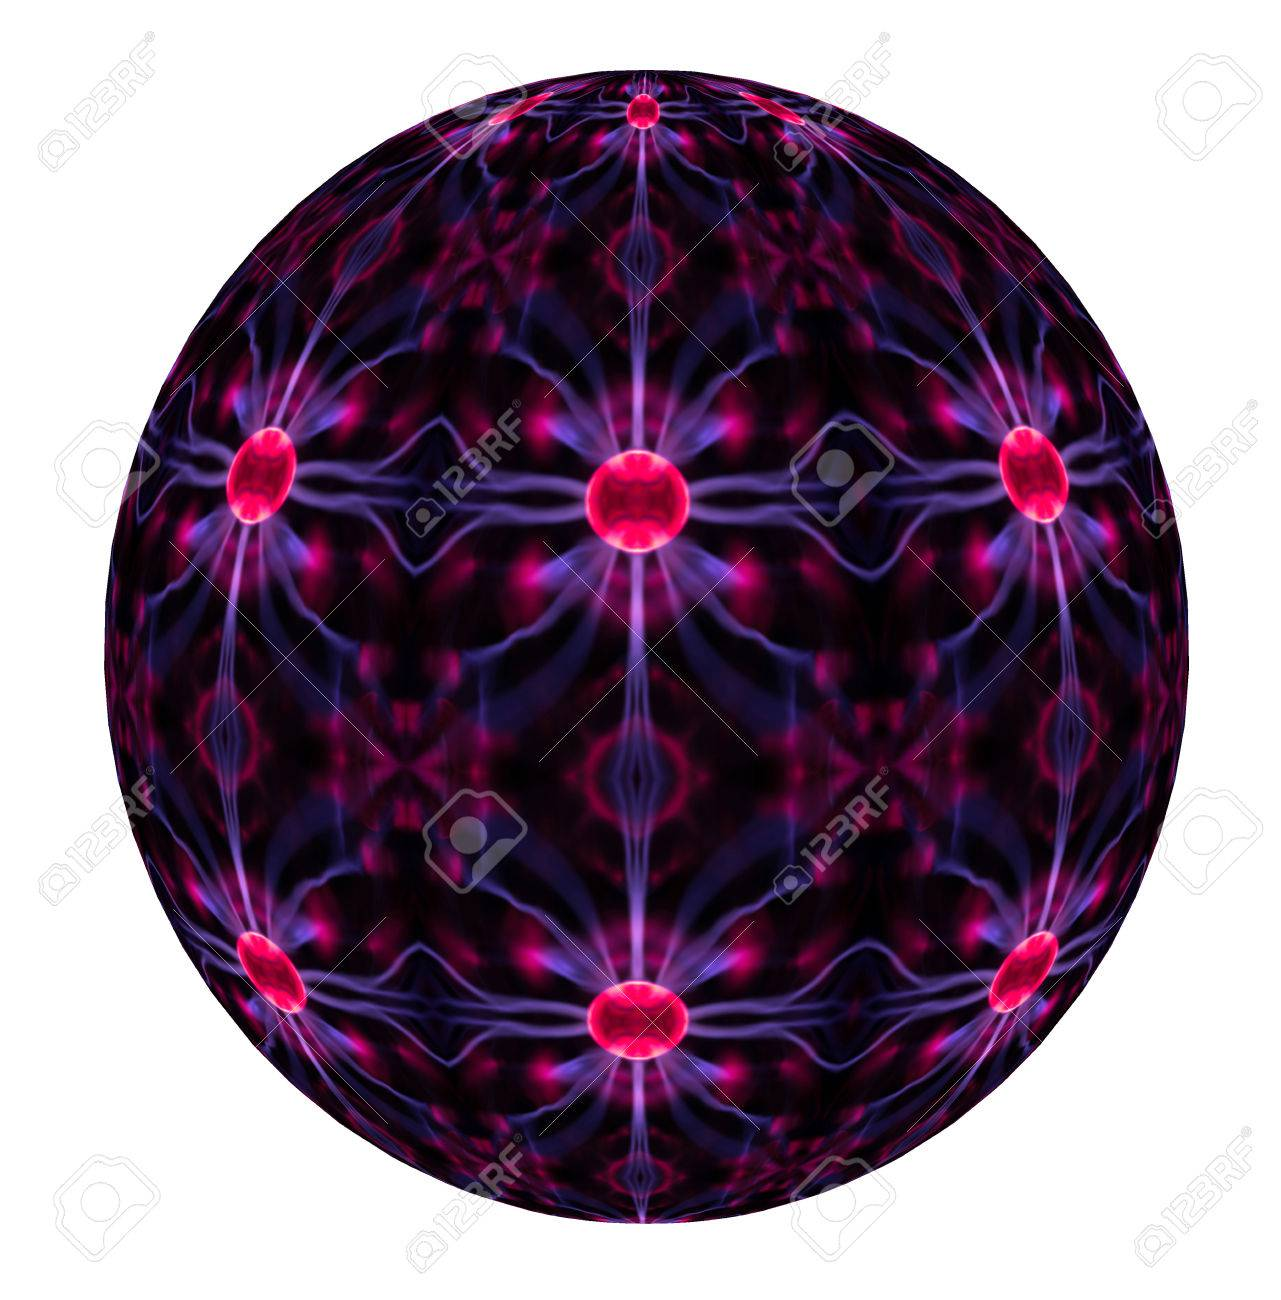 An Abstract View Of A Plasma Ball From Tesla Lamp Toy Image Stock Photo    62538974